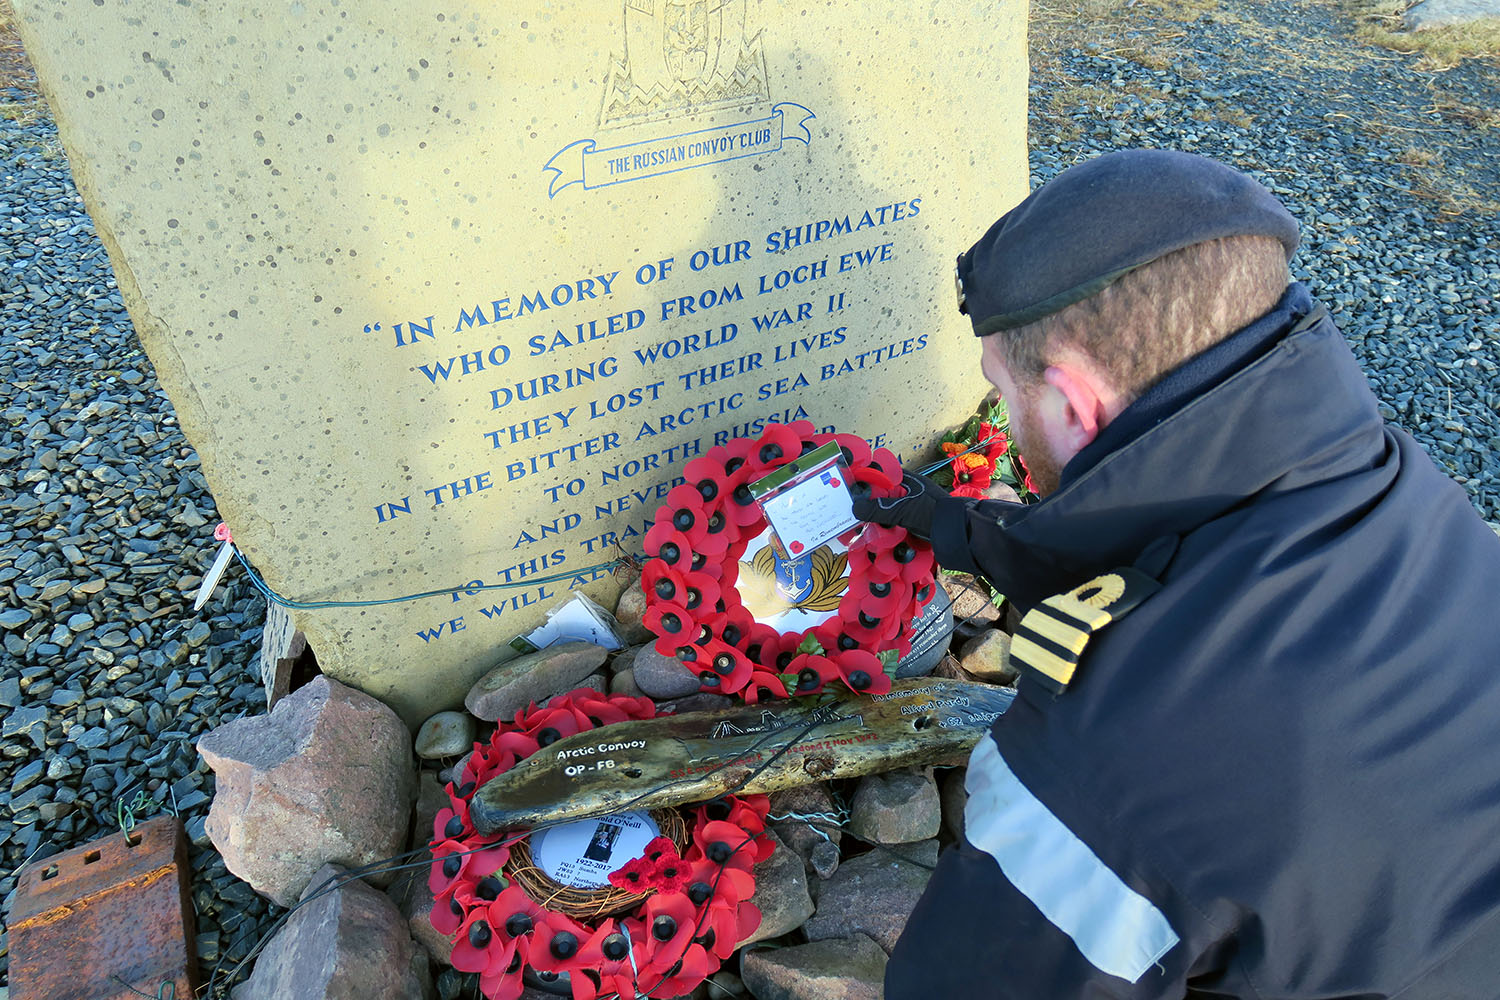 Arctic-bound HMS Westminster remembers WW2 Russian convoy heroes